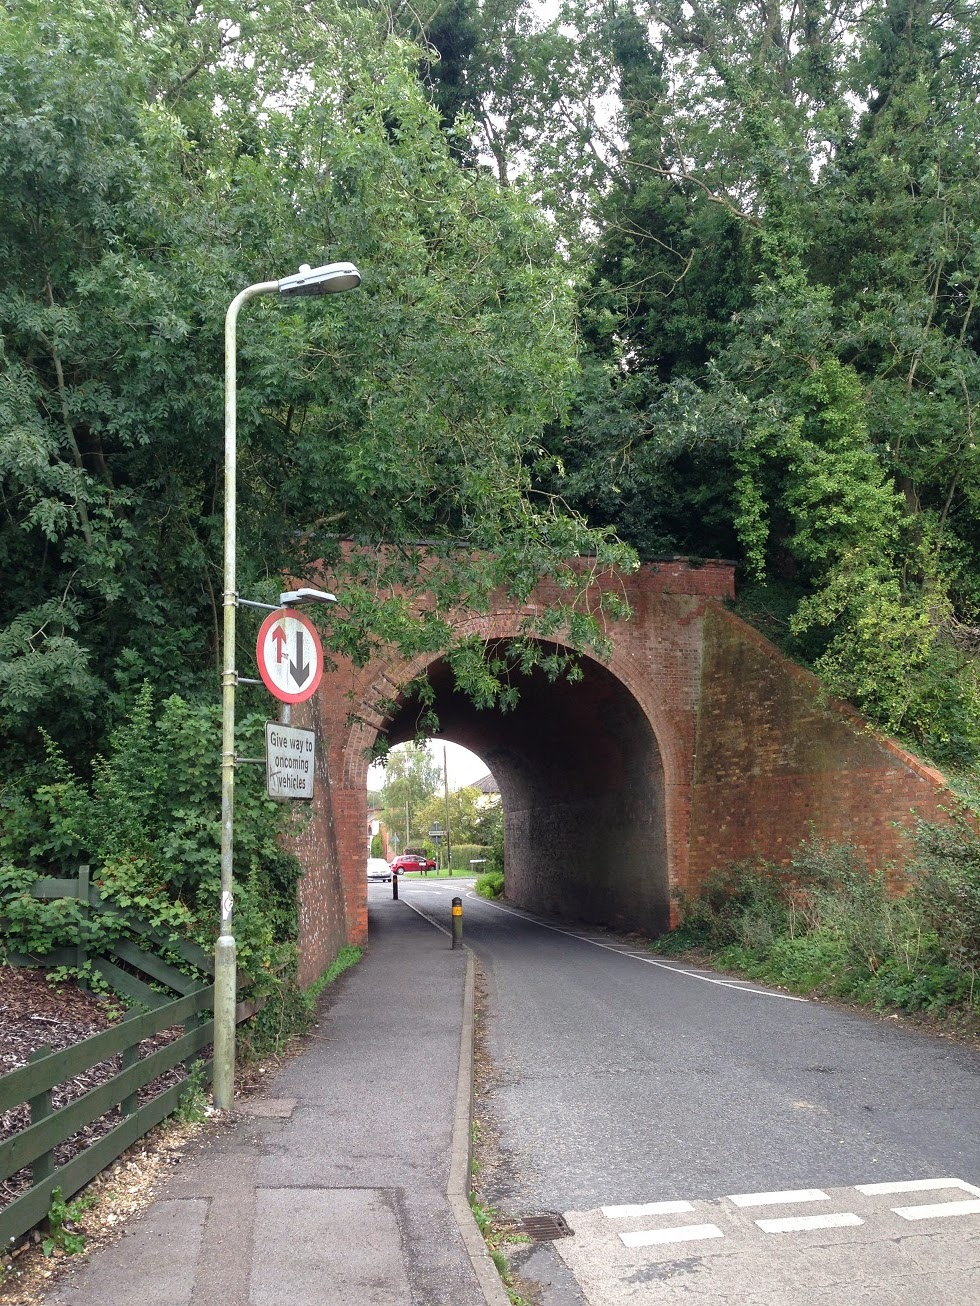 Bridge carrying the former Newbury to Winchester railway, Whitchurch, Hampshire